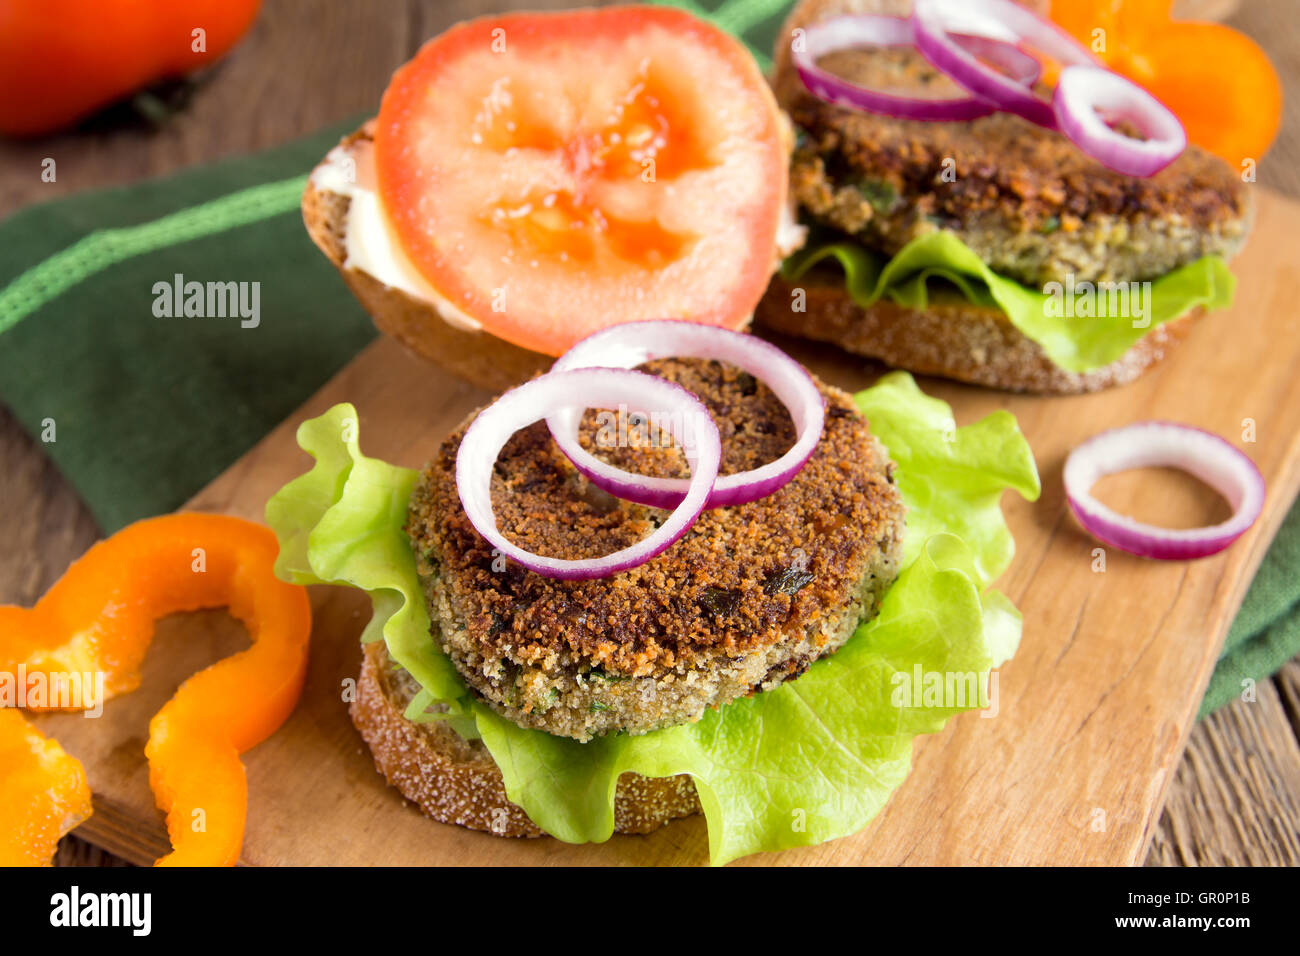 Vegetarian lentil burger with vegetables on wooden cutting board - Stock Image